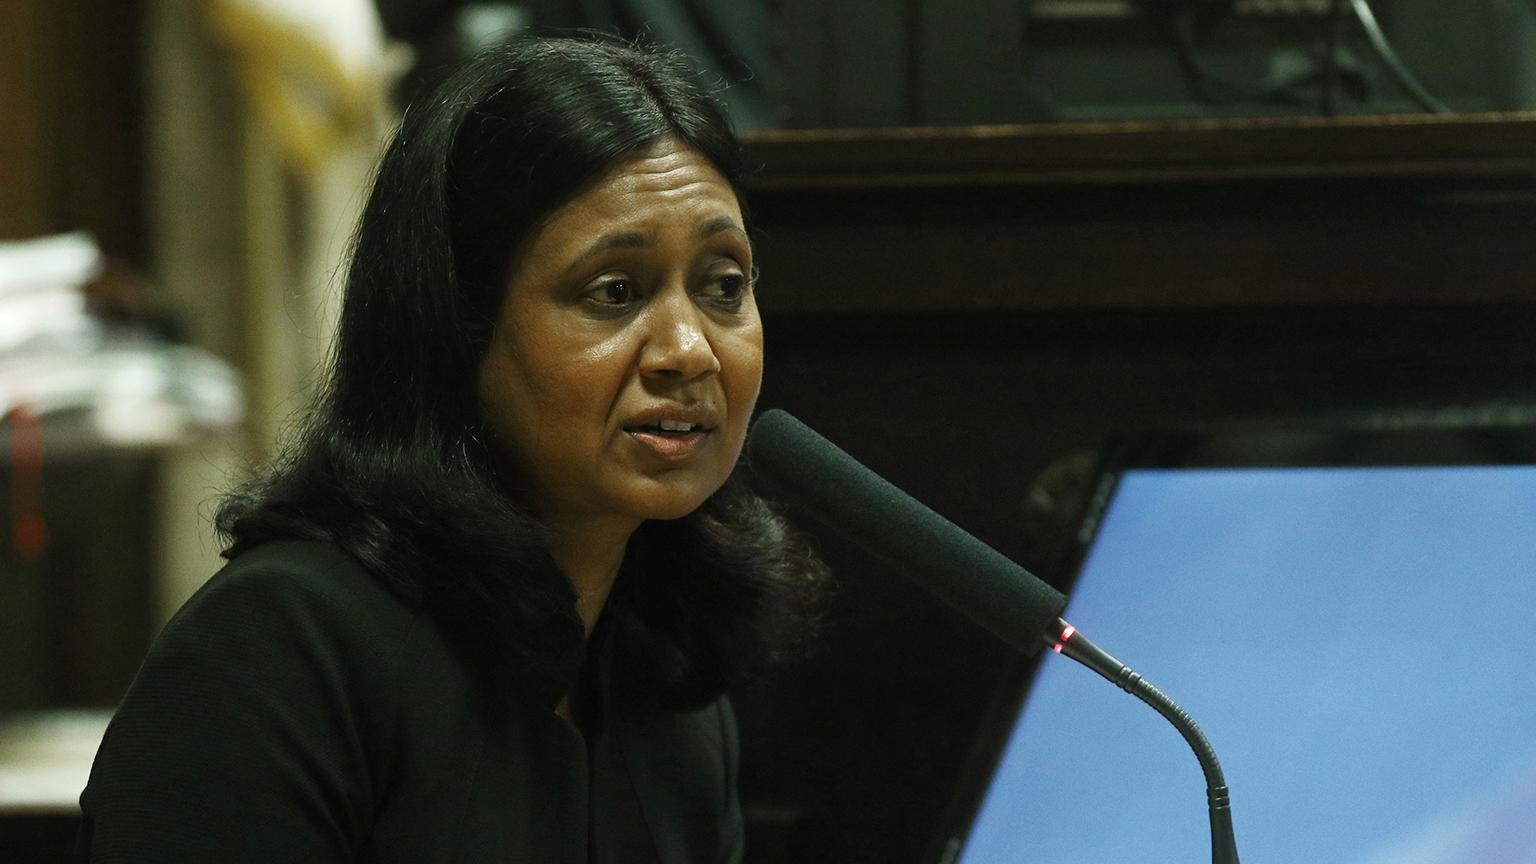 Cook County Medical Examiner Dr. Ponni Arunkumar testifies at the trial of Jason Van Dyke on Wednesday, Sept. 19, 2018. (John J. Kim / Chicago Tribune / Pool)